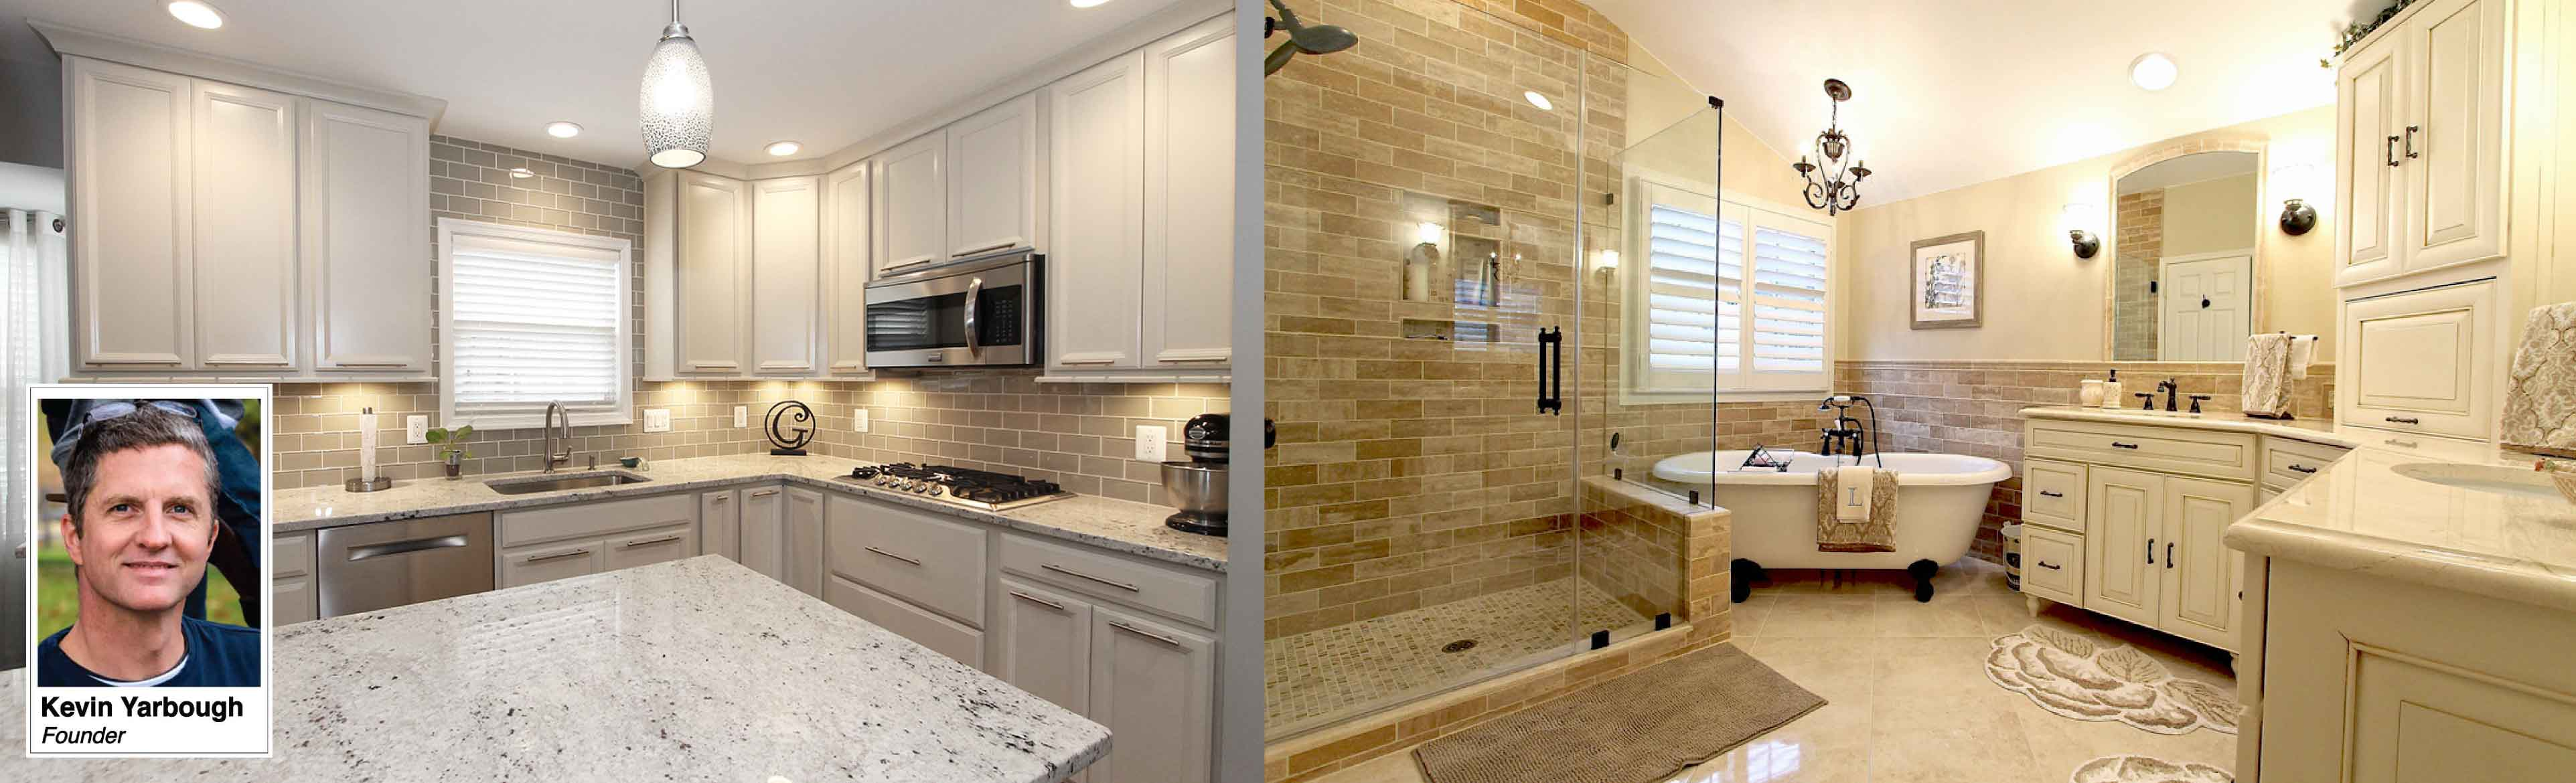 Ram Kitchen Remodeling & Bathroom Remodeling Contractor